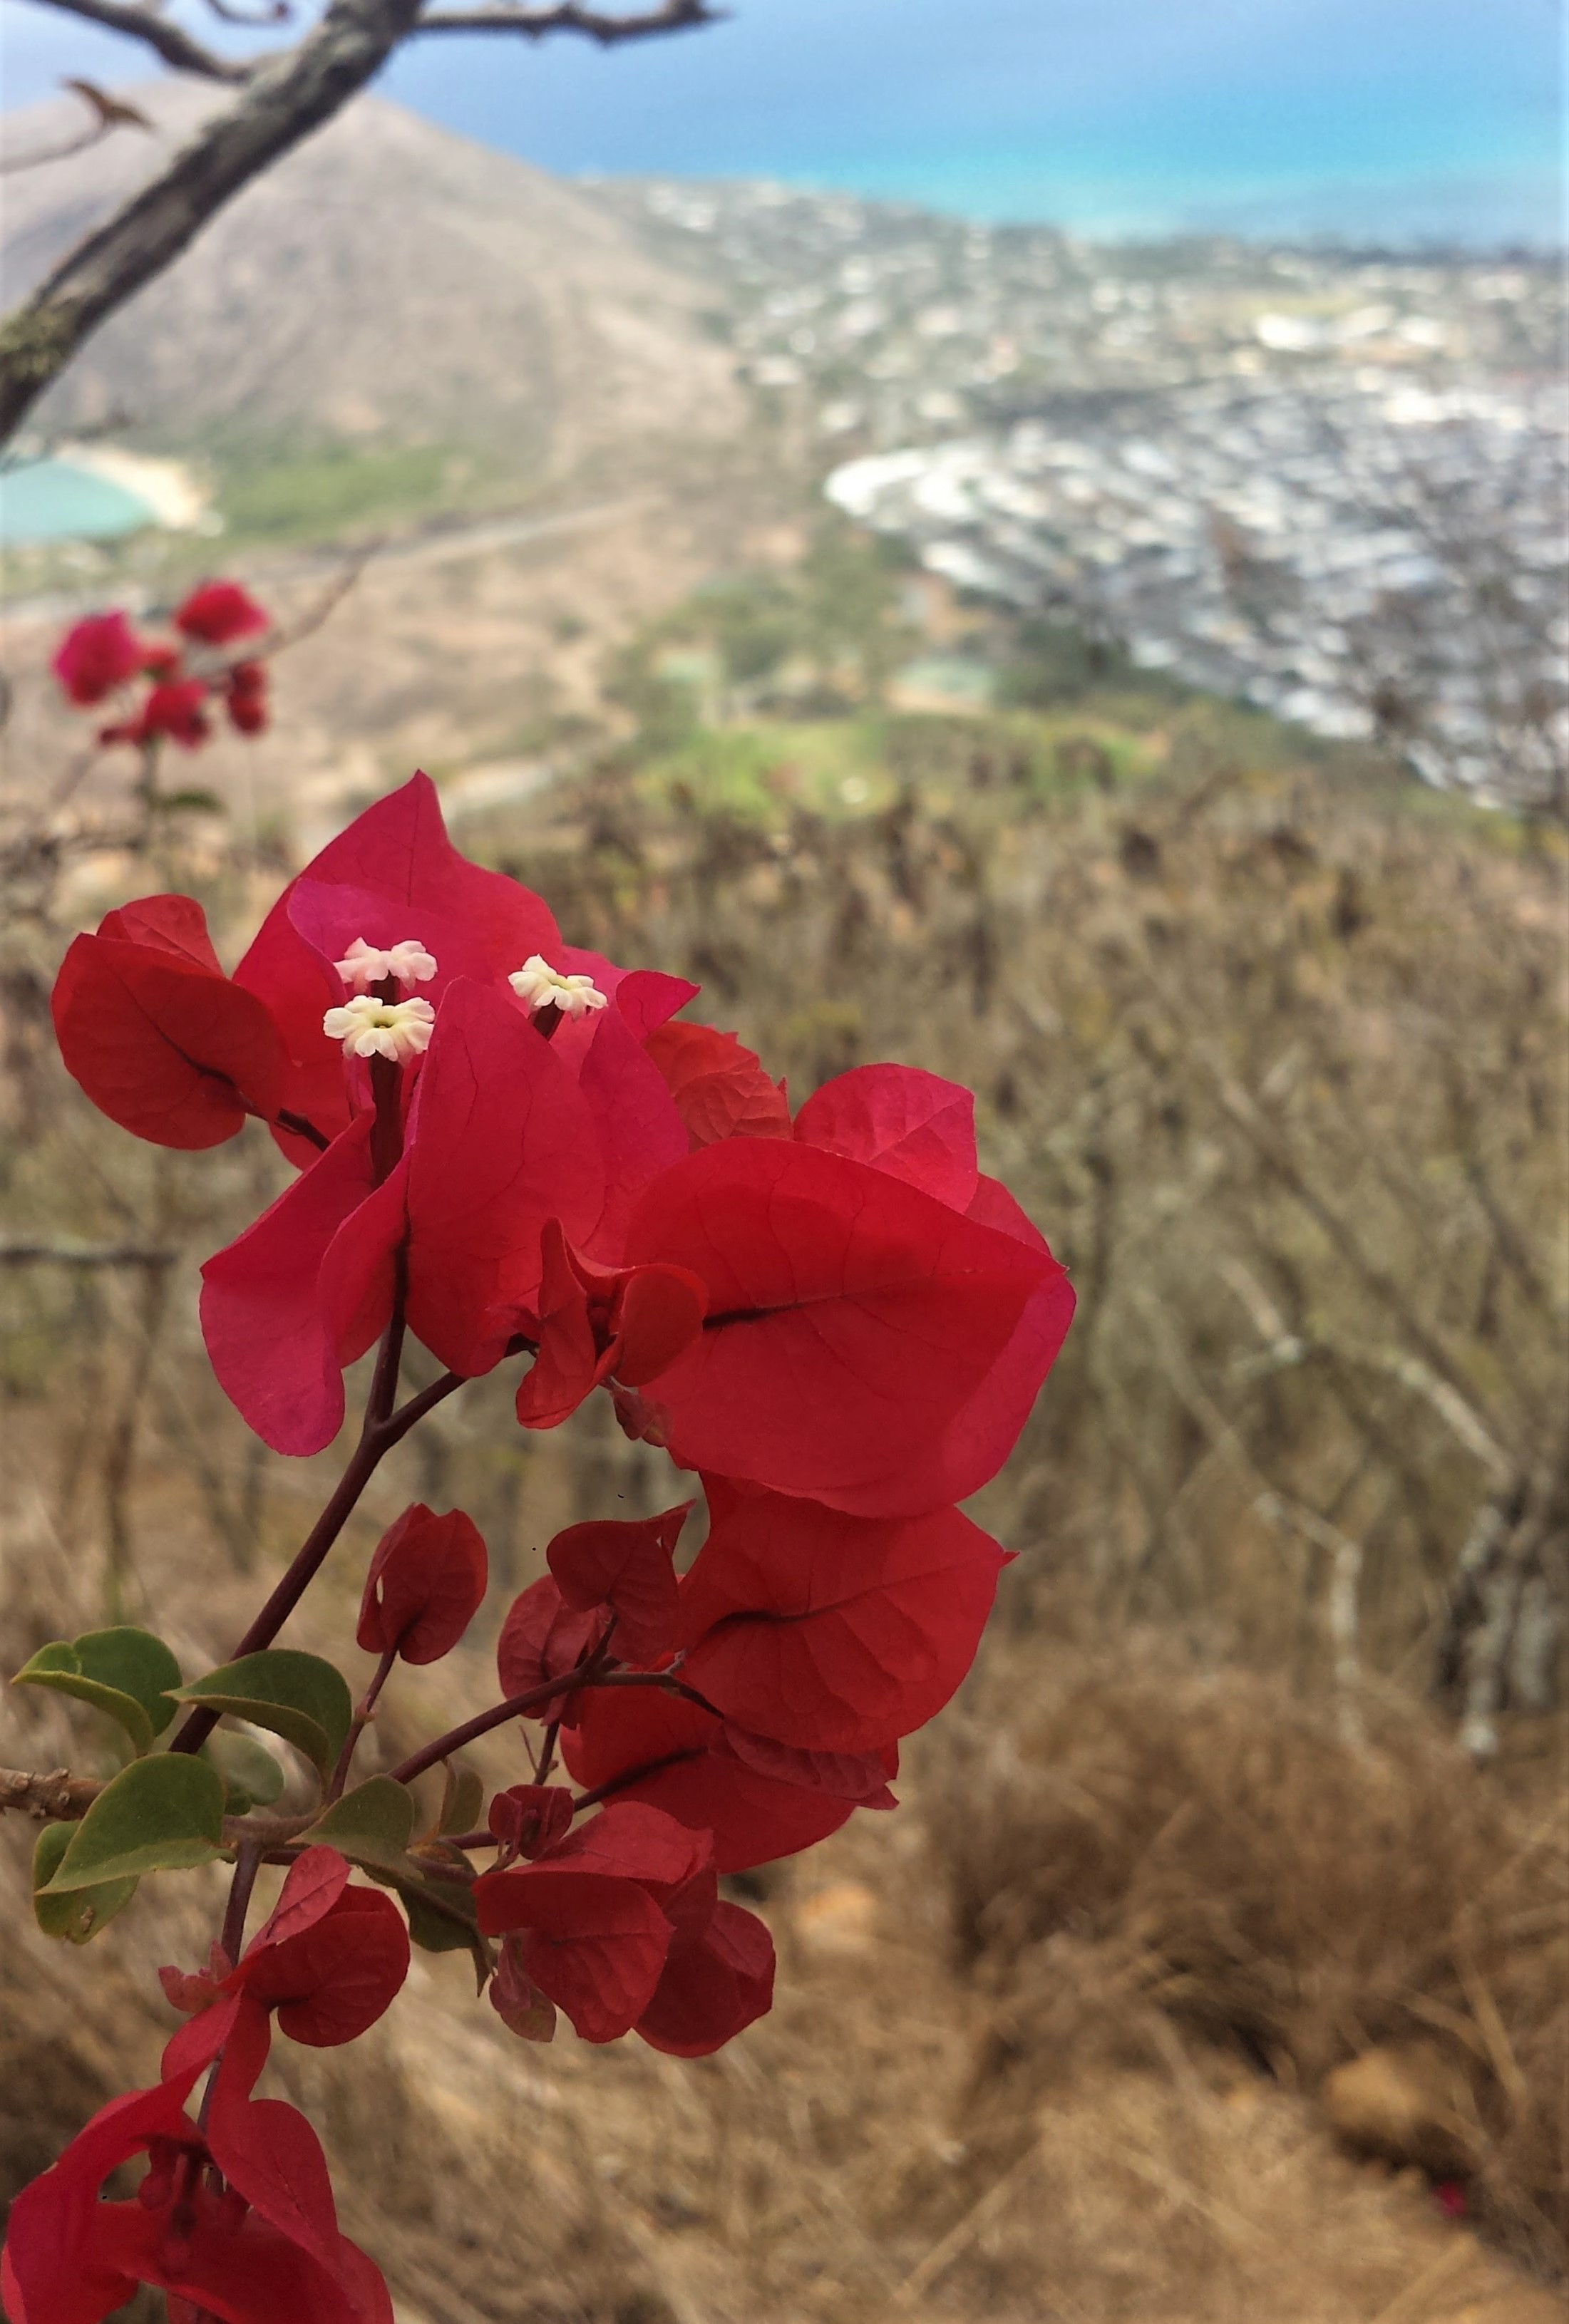 Vivid pink flower surrounded by brown shrubbery on the top of the Koko head trail in Oahu